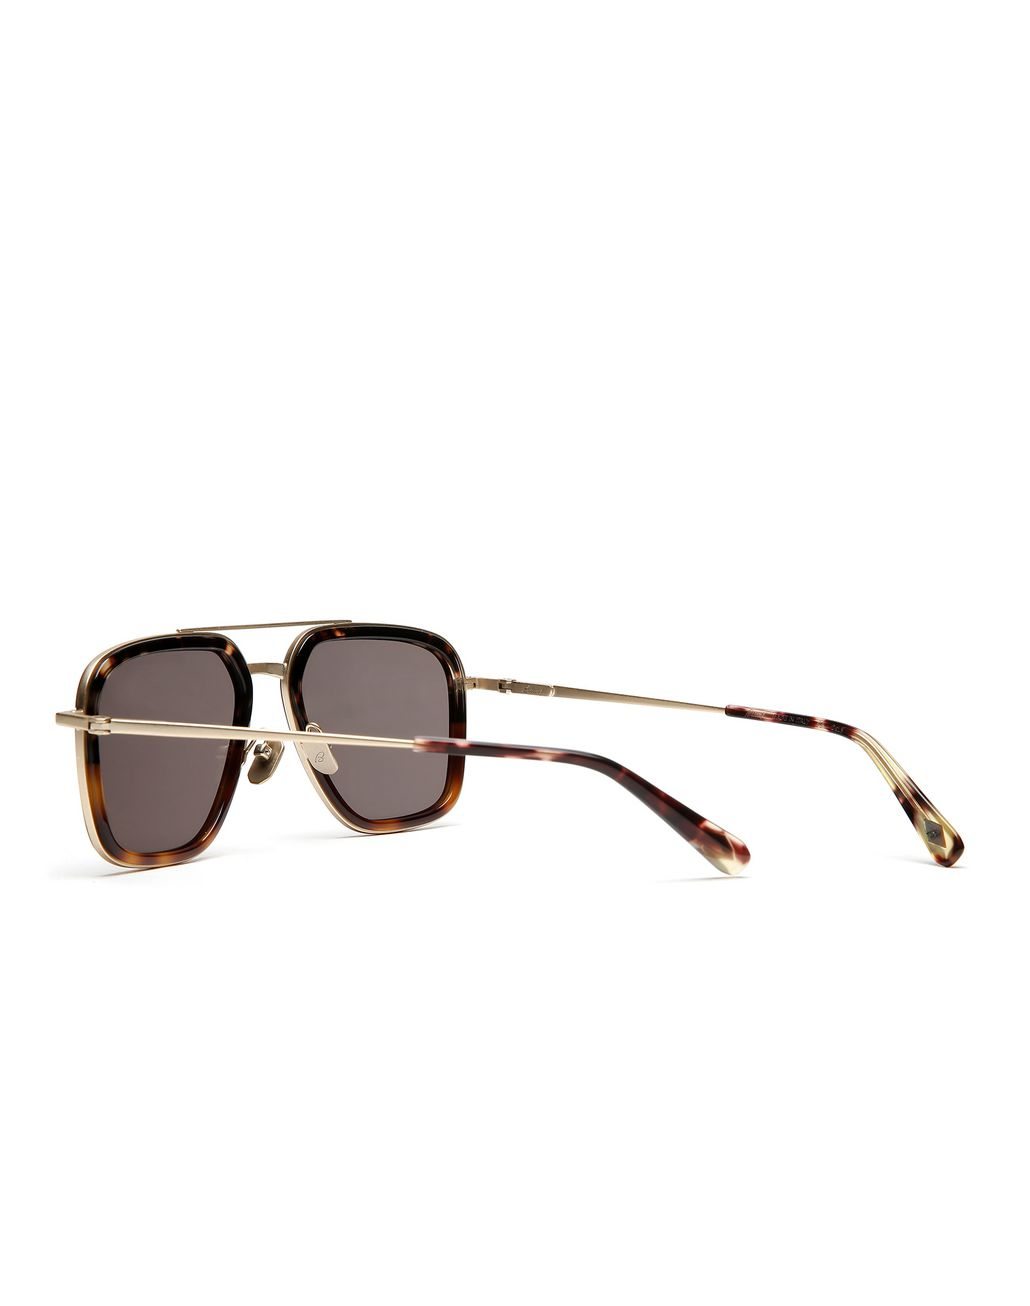 BRIONI Havana Geometric Shape Sunglasses with Grey Lenses  Sunglasses [*** pickupInStoreShippingNotGuaranteed_info ***] d